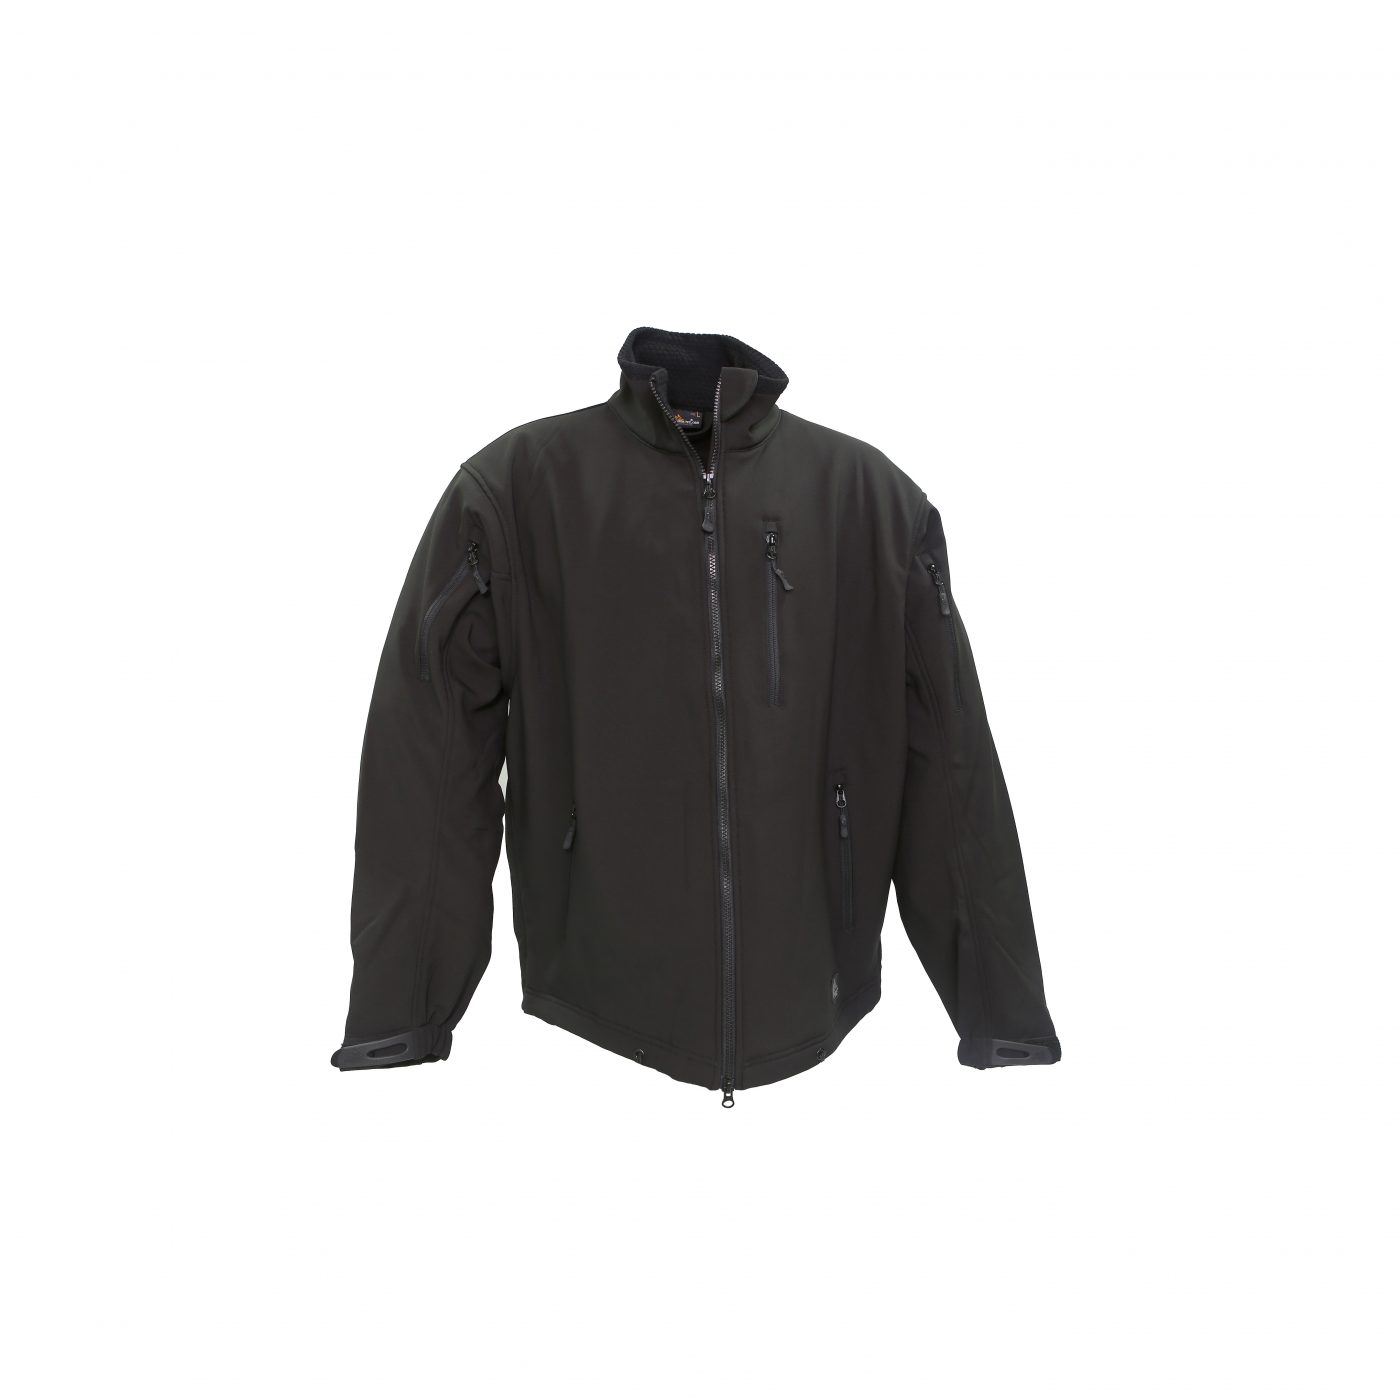 Куртка Jackal Soft Shell Jacket Helikon-Tex